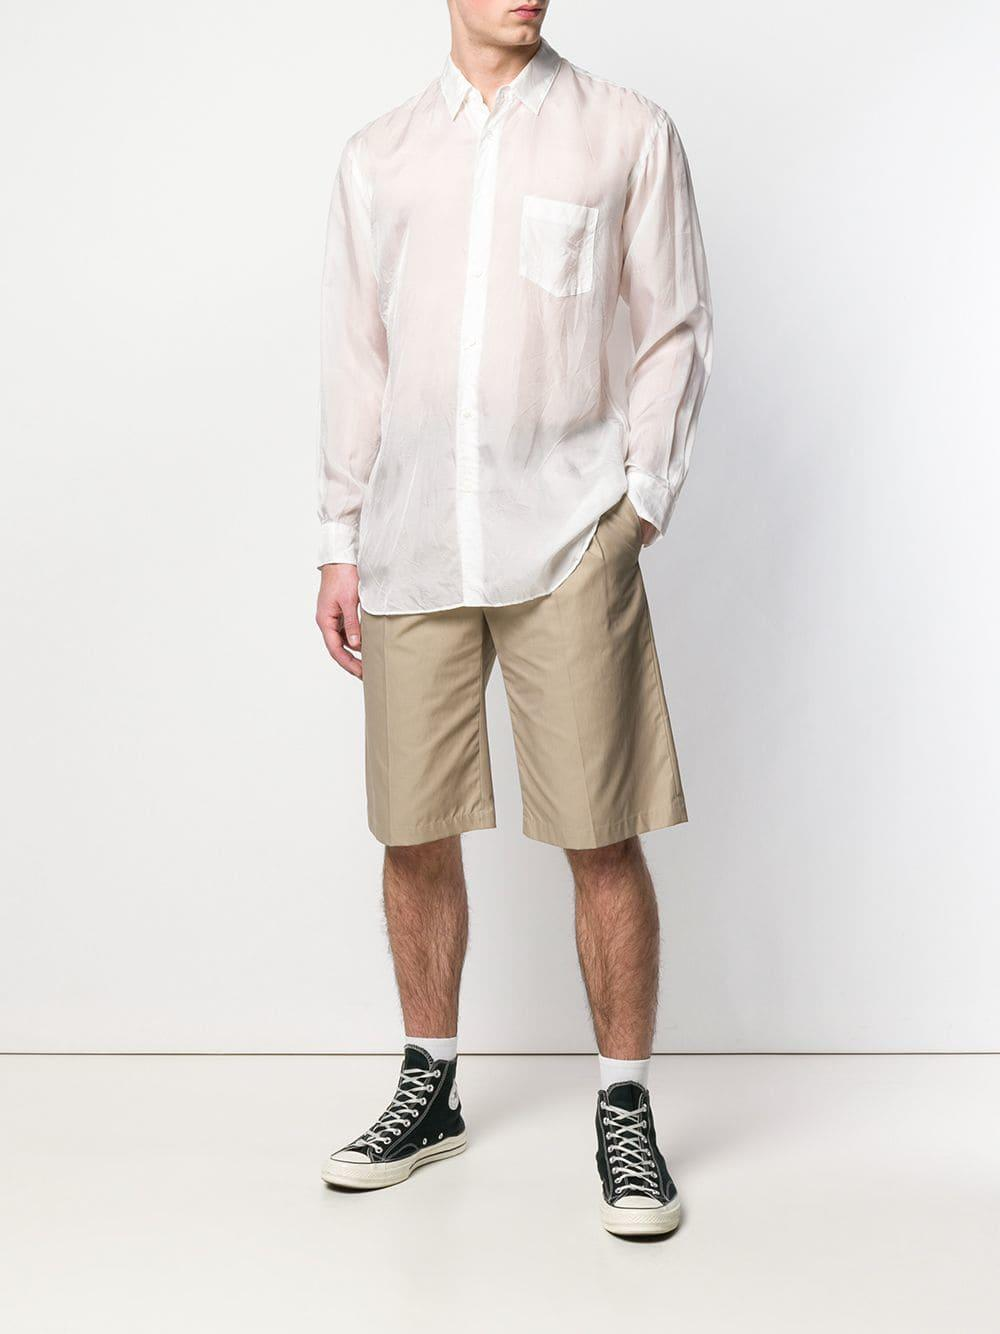 c83cfea349 Lyst - Comme des Garçons Semi-sheer Shirt in White for Men